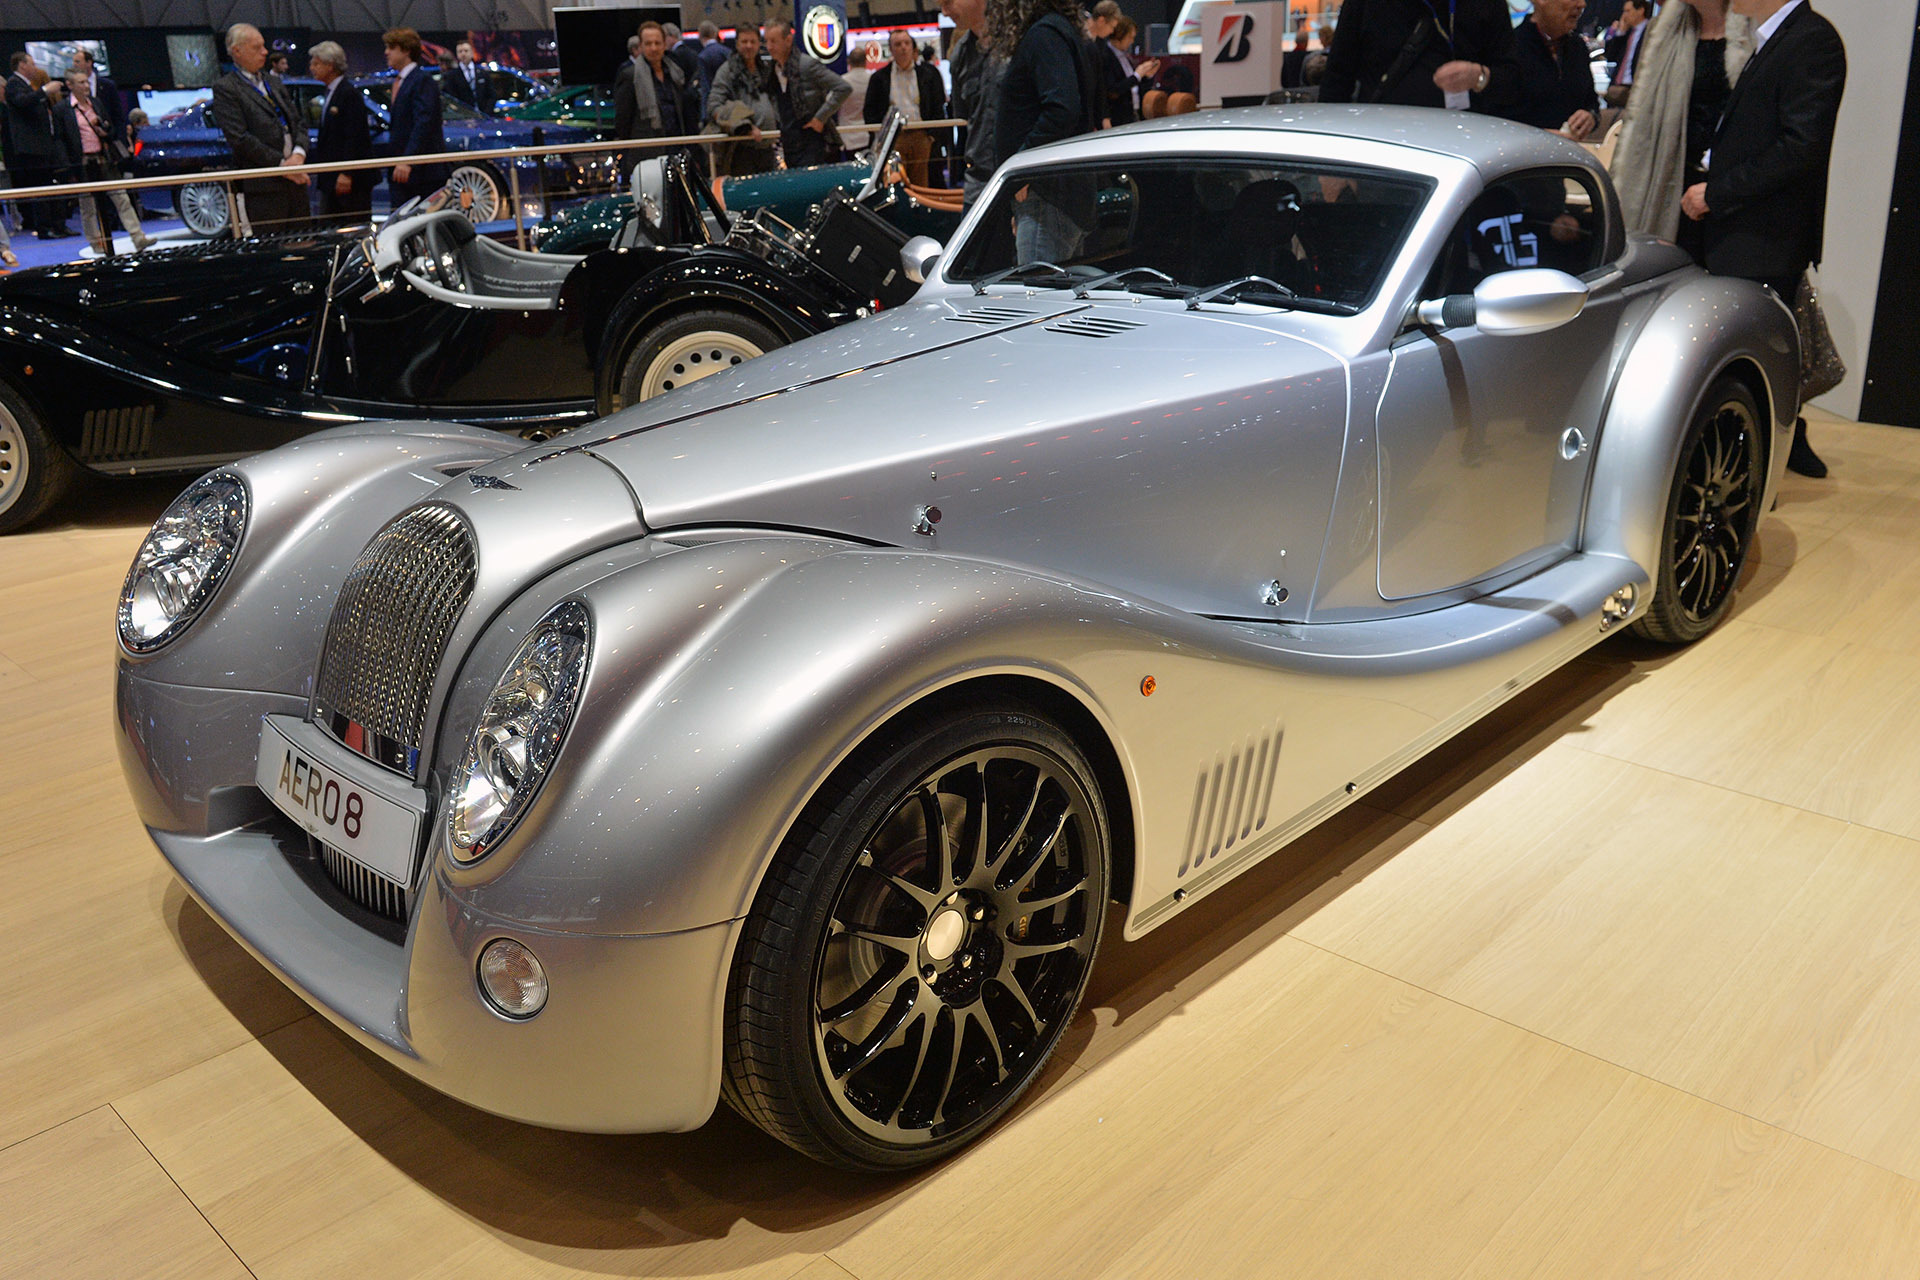 2015 morgan aero 8 geneva 2015 photo gallery autoblog. Black Bedroom Furniture Sets. Home Design Ideas